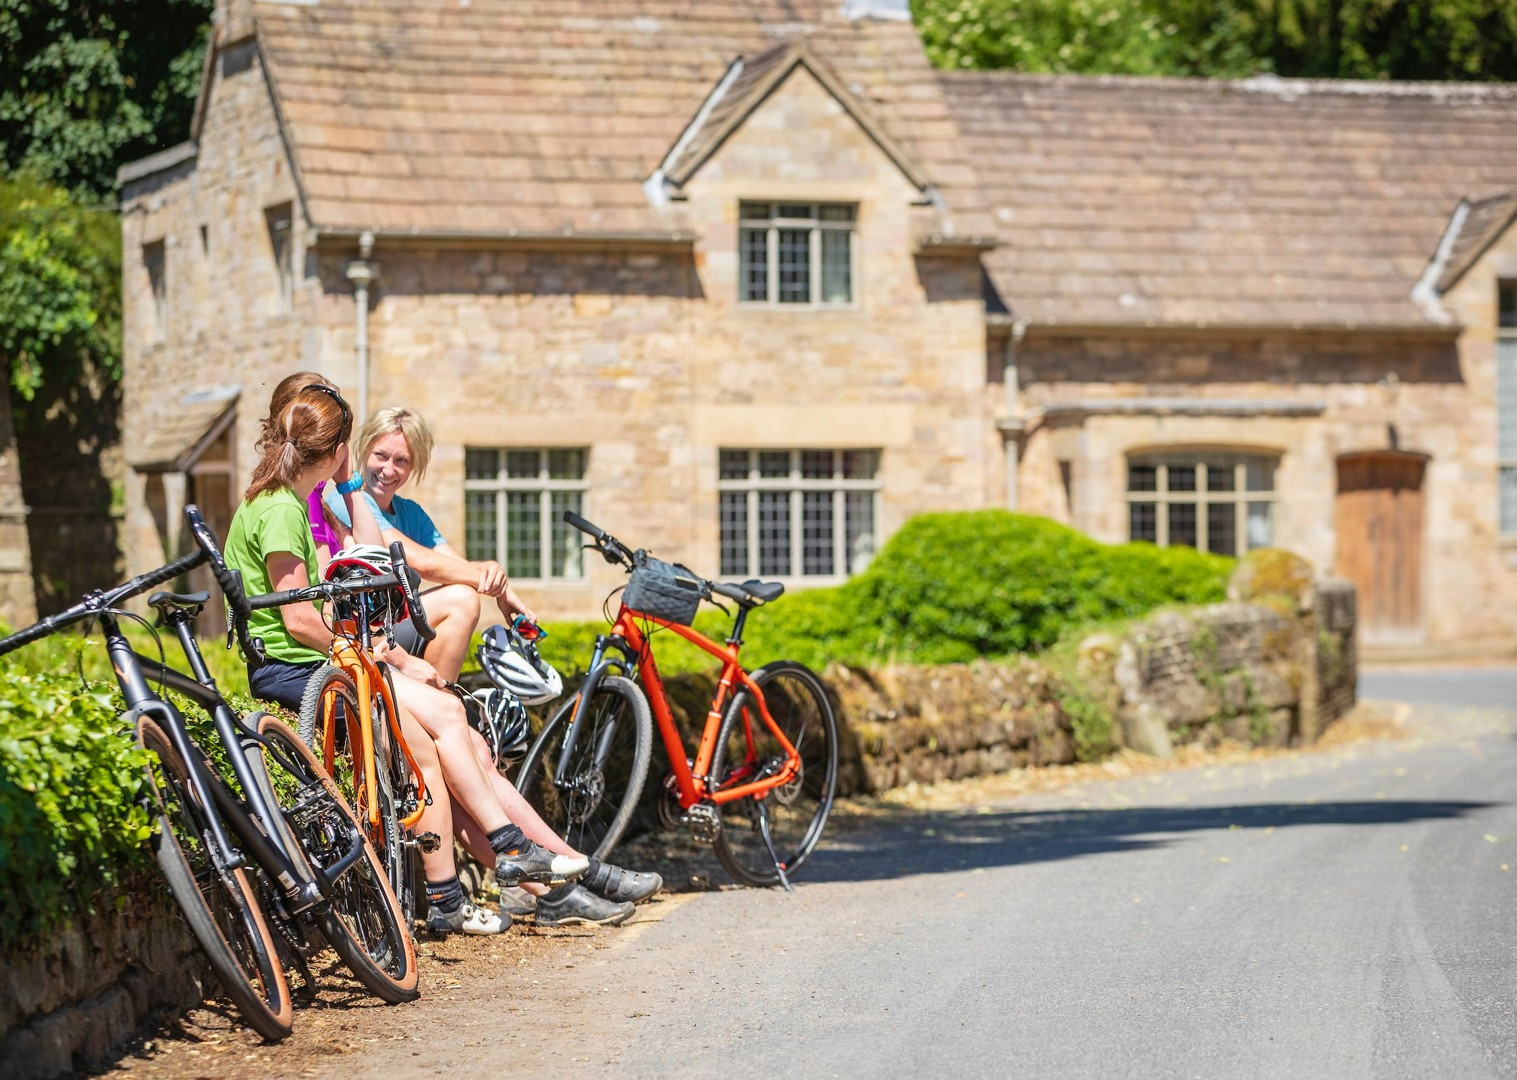 local-accommodations-cottage-quality-cycling-holiday-uk.jpg - UK - Way of the Roses 5 Days Cycling - Self-Guided Leisure Cycling Holiday - Leisure Cycling